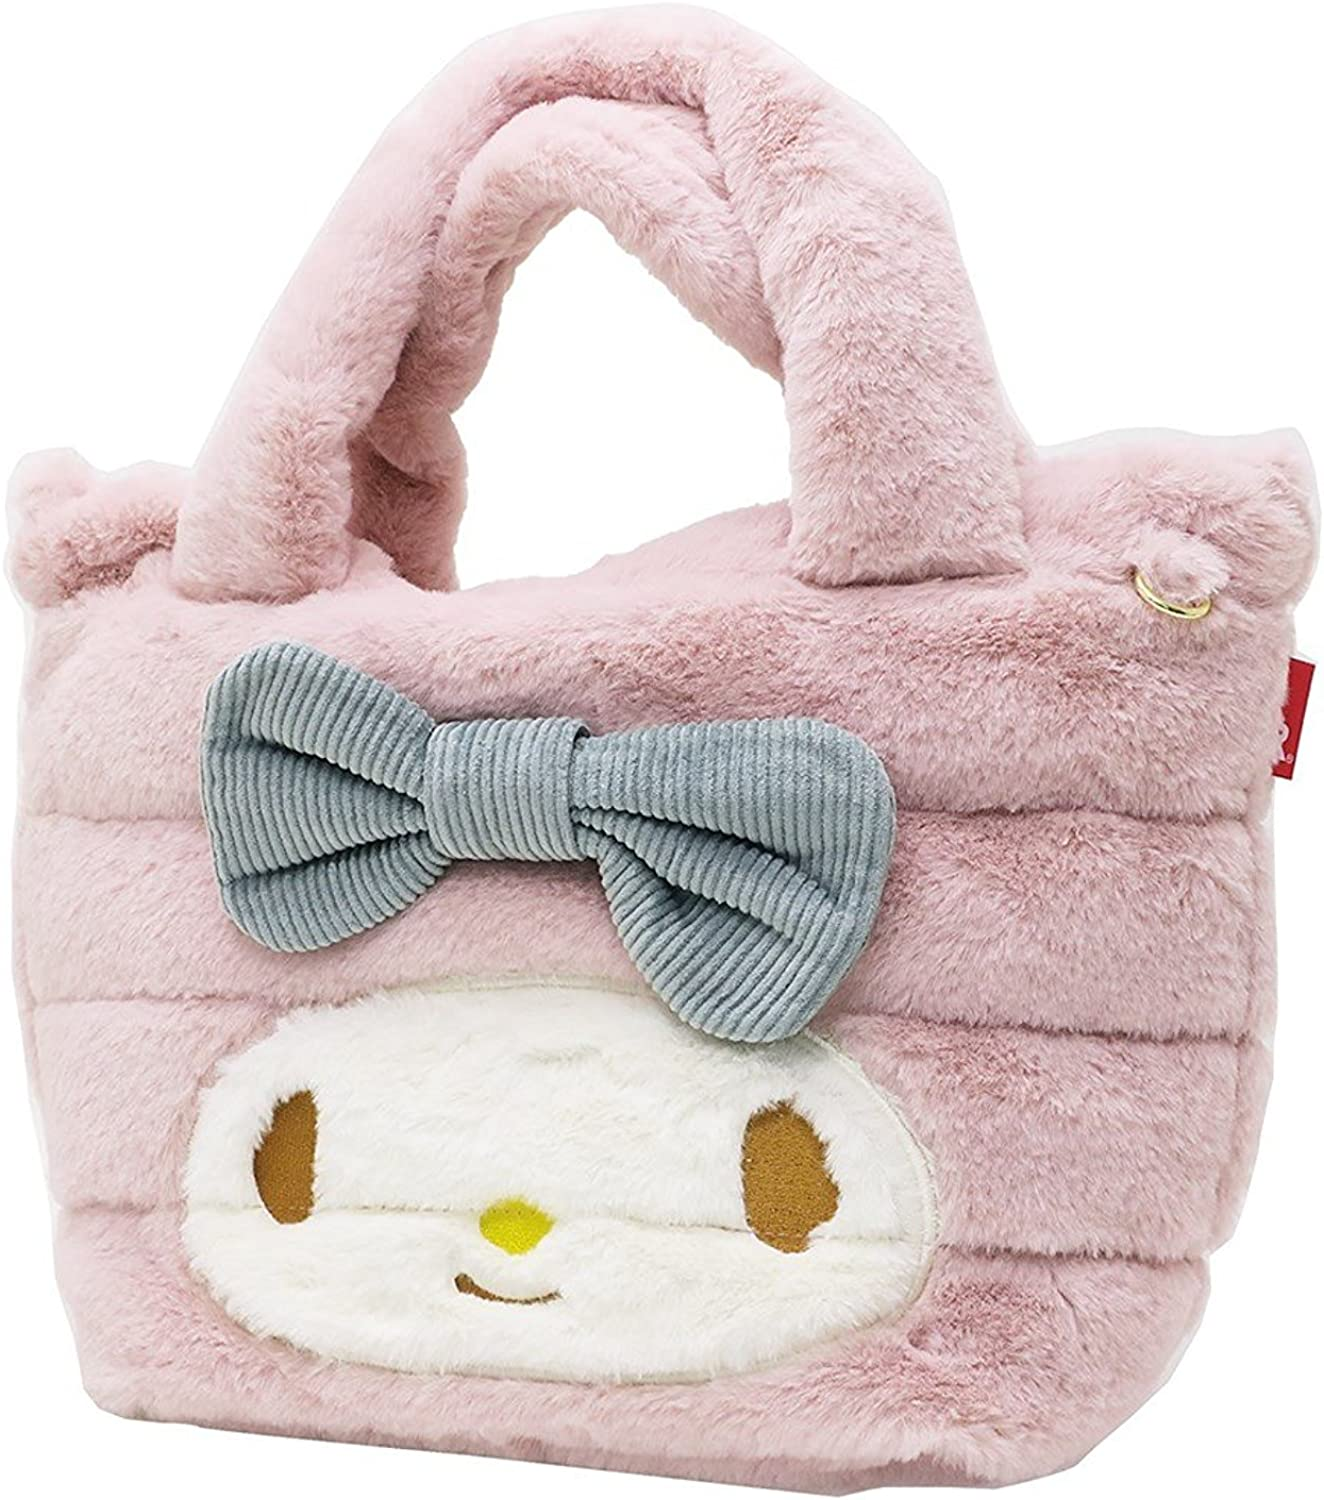 Sanrio My Melody Feather roo Bag Tote Bag Pink 488702